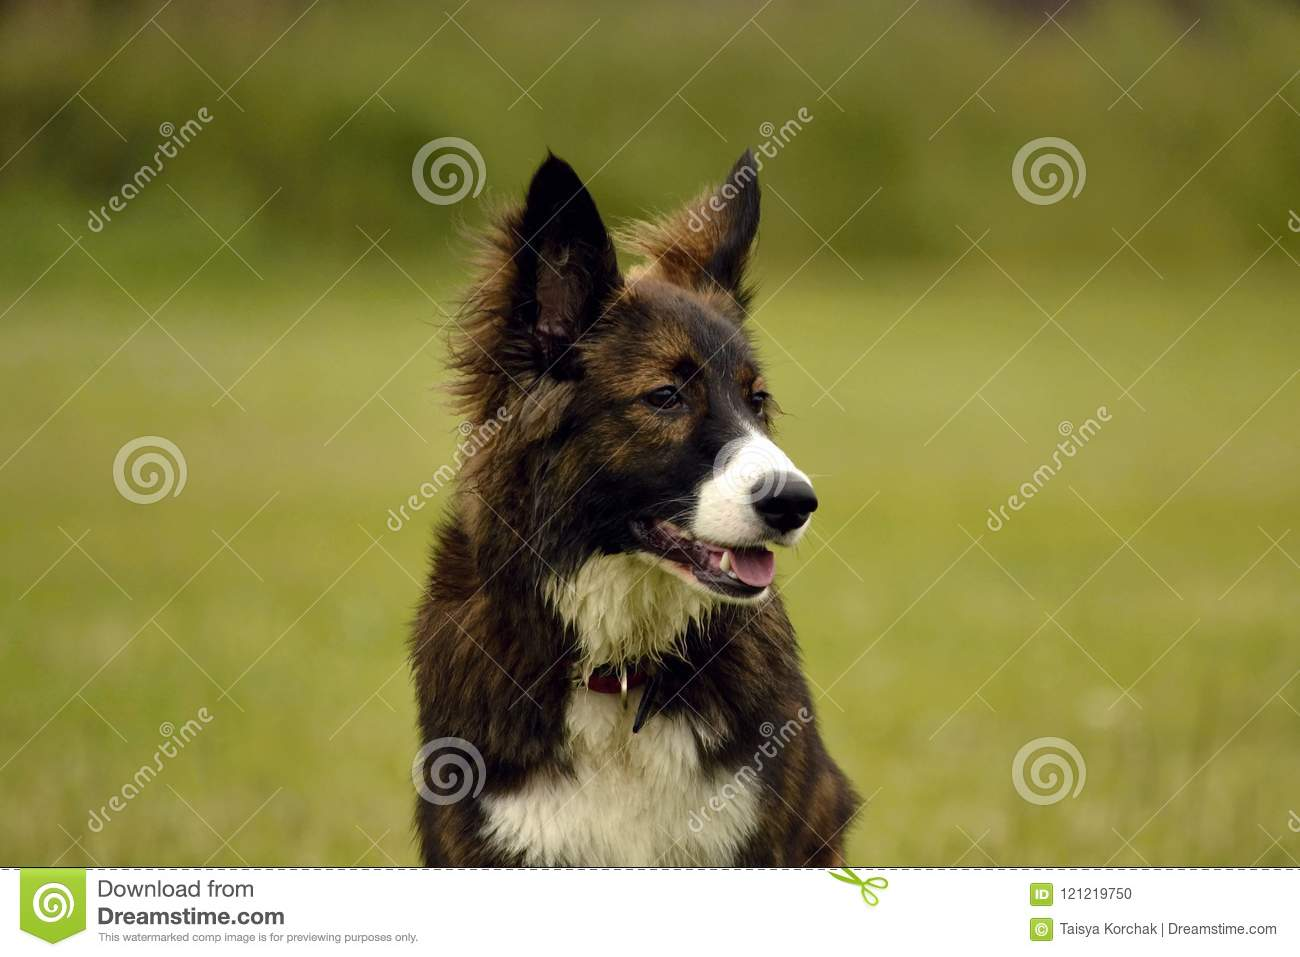 Emotions of animals. Young energetic dog on a walk. Puppies education, cynology, intensive training of young dogs. Walking dogs in